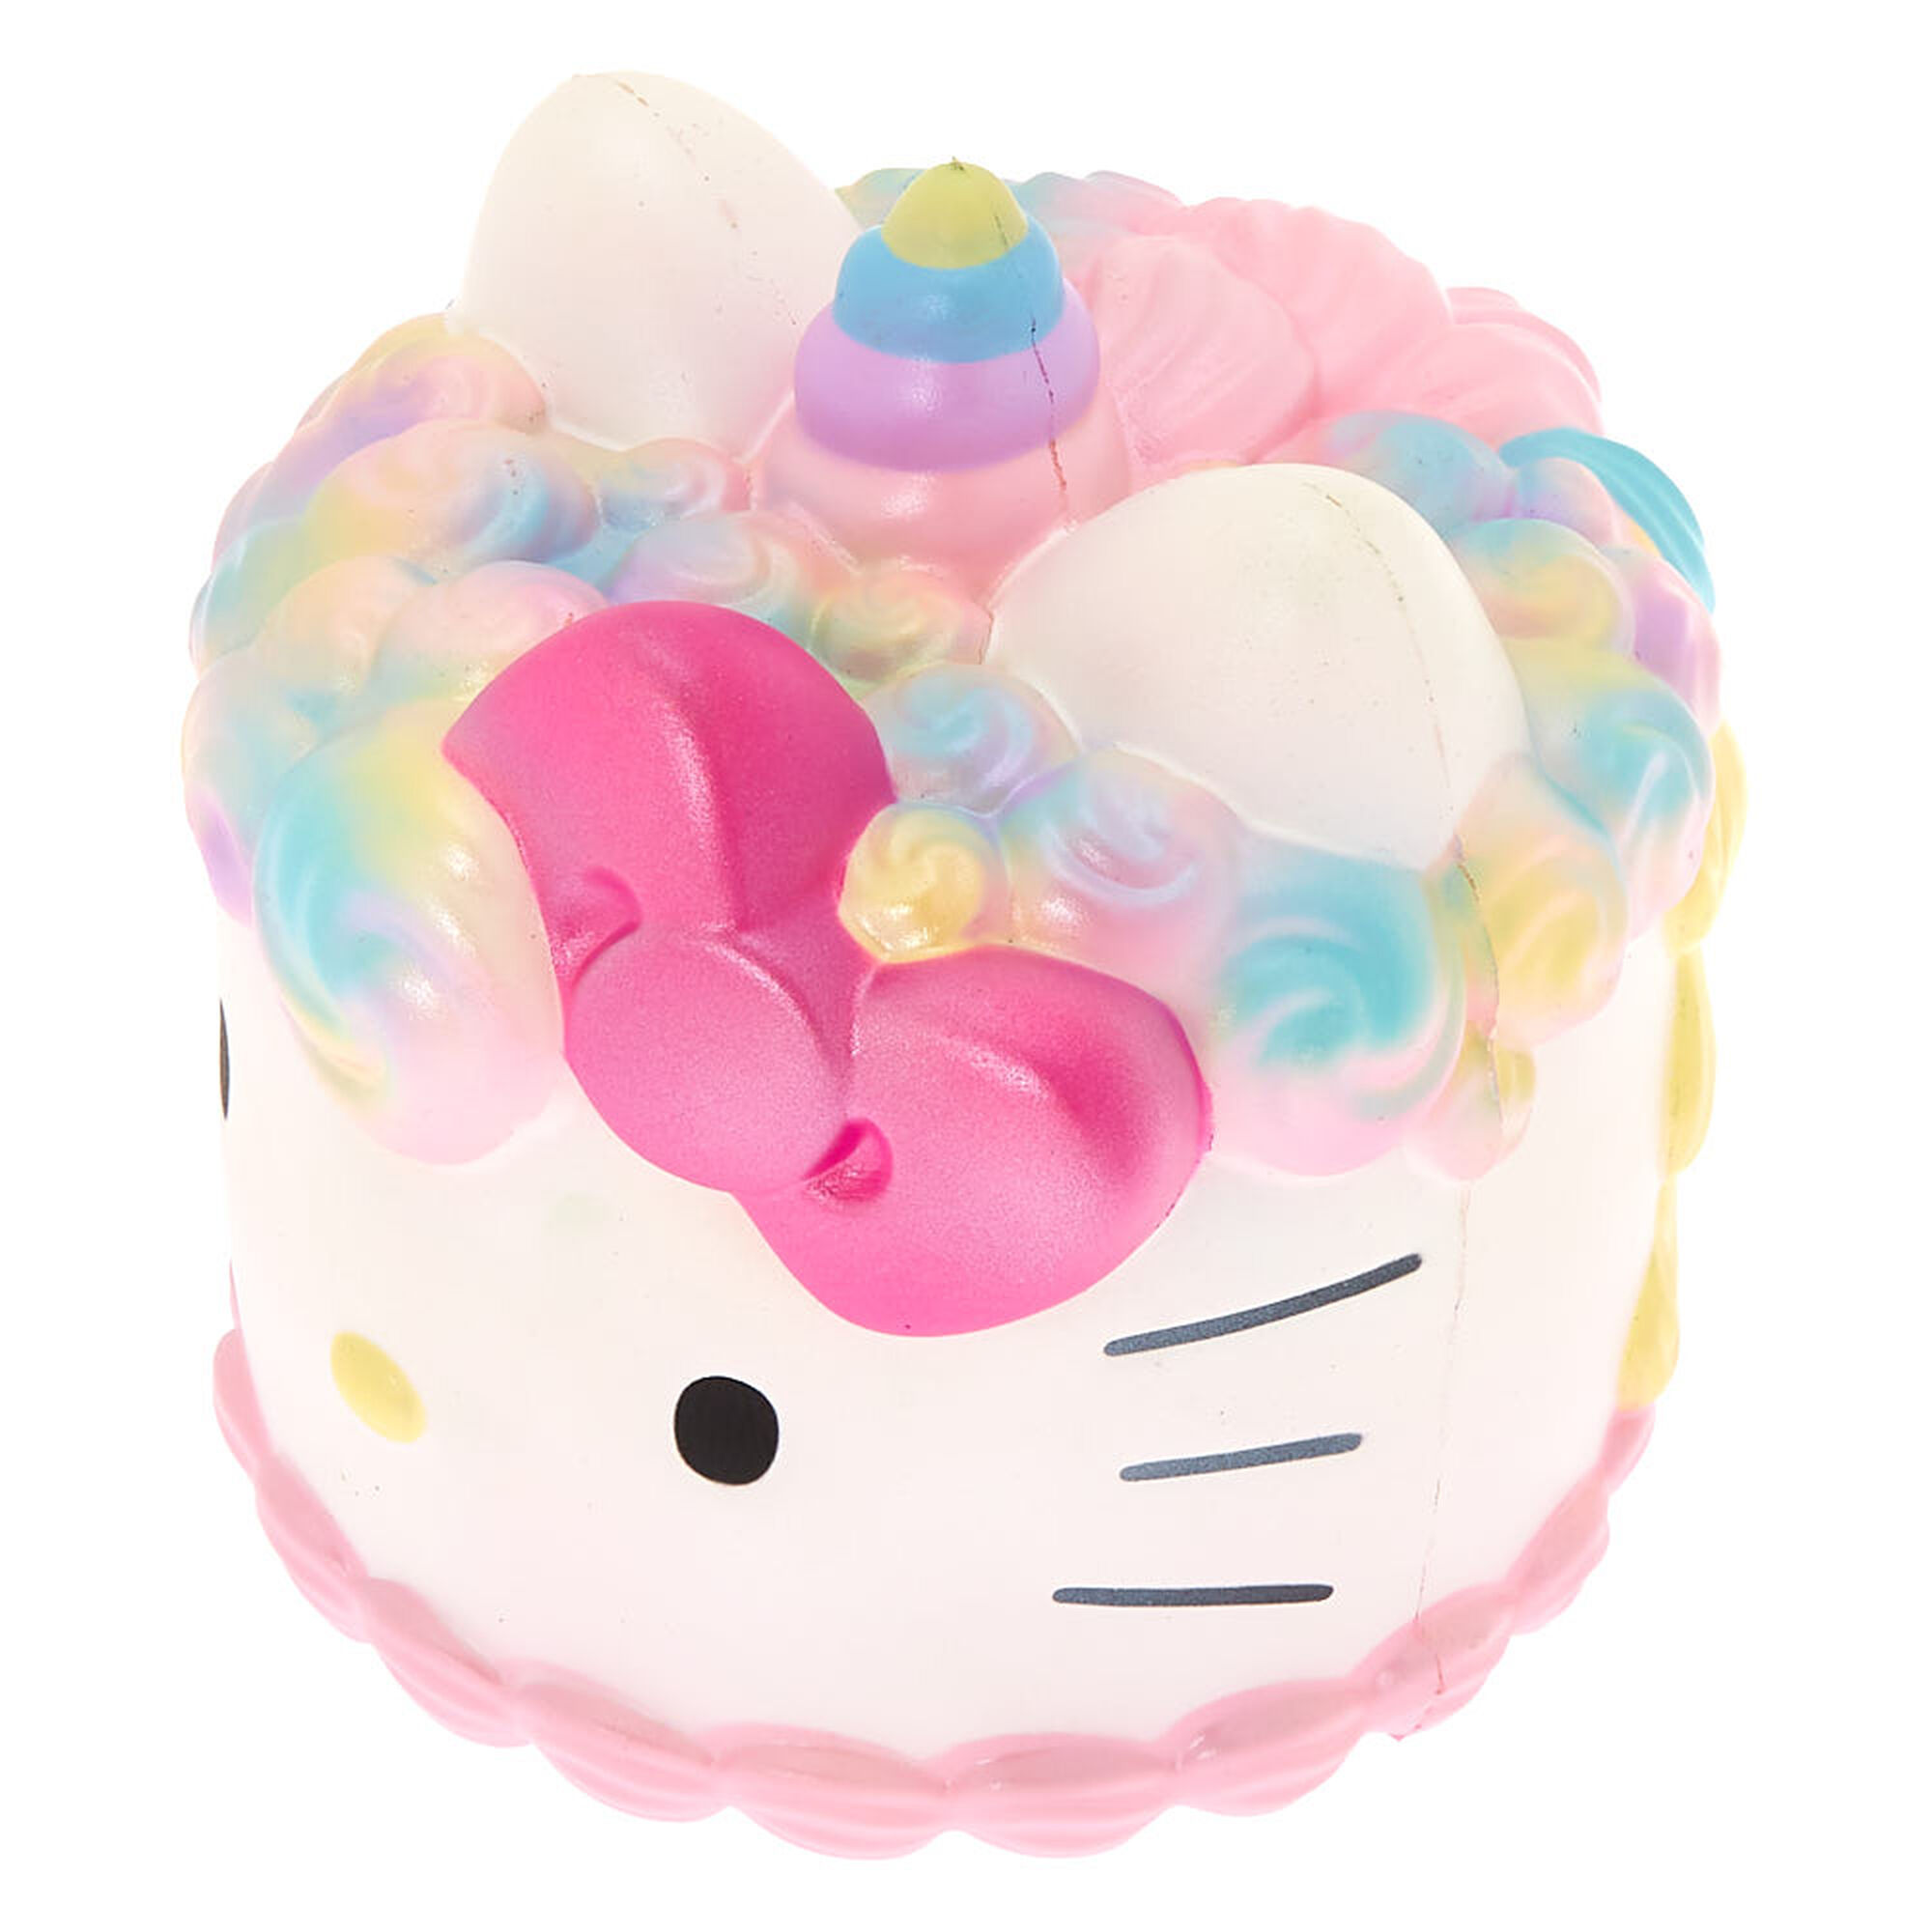 ef164fef8 Hello Kitty® Jumbo Cake Squish Toy - White | Claire's US